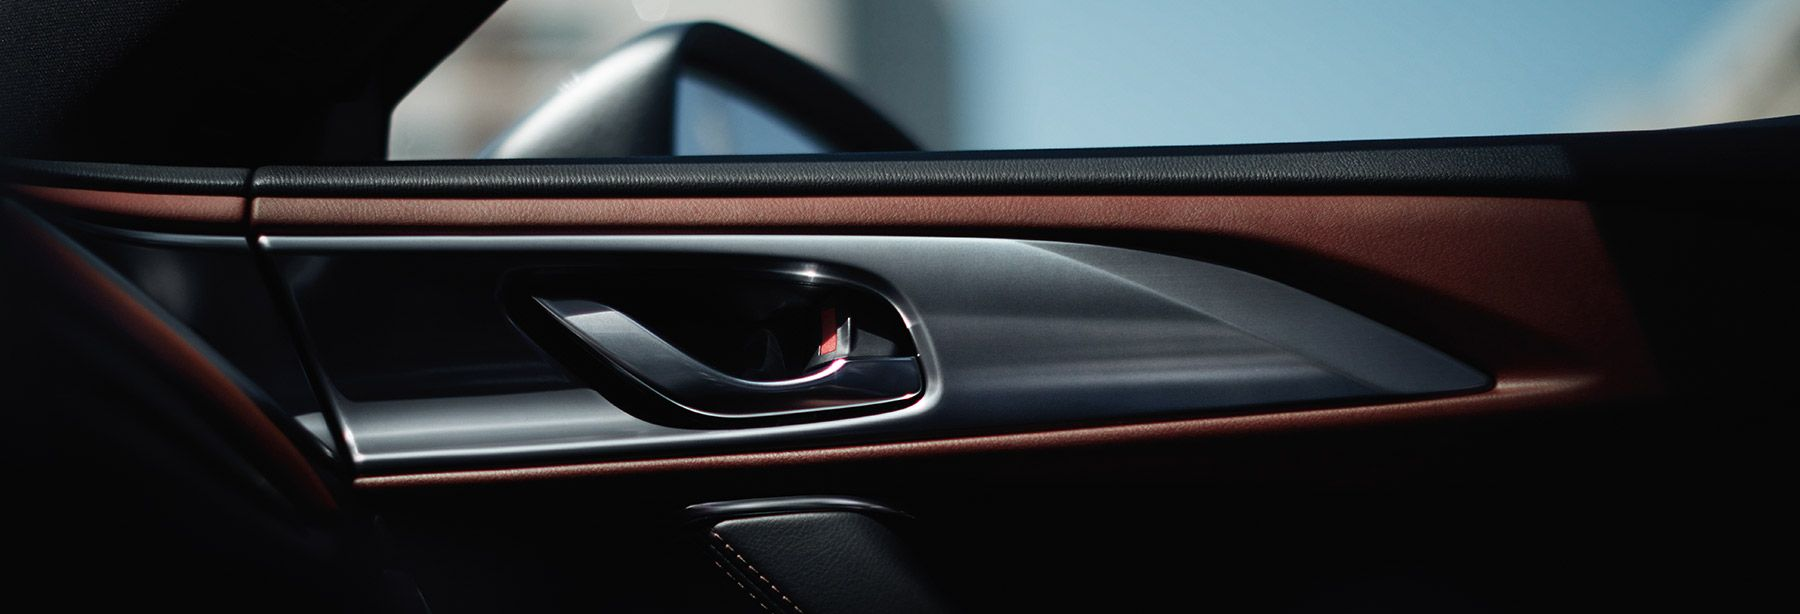 Luxurious Detailing in the 2019 Mazda CX-9